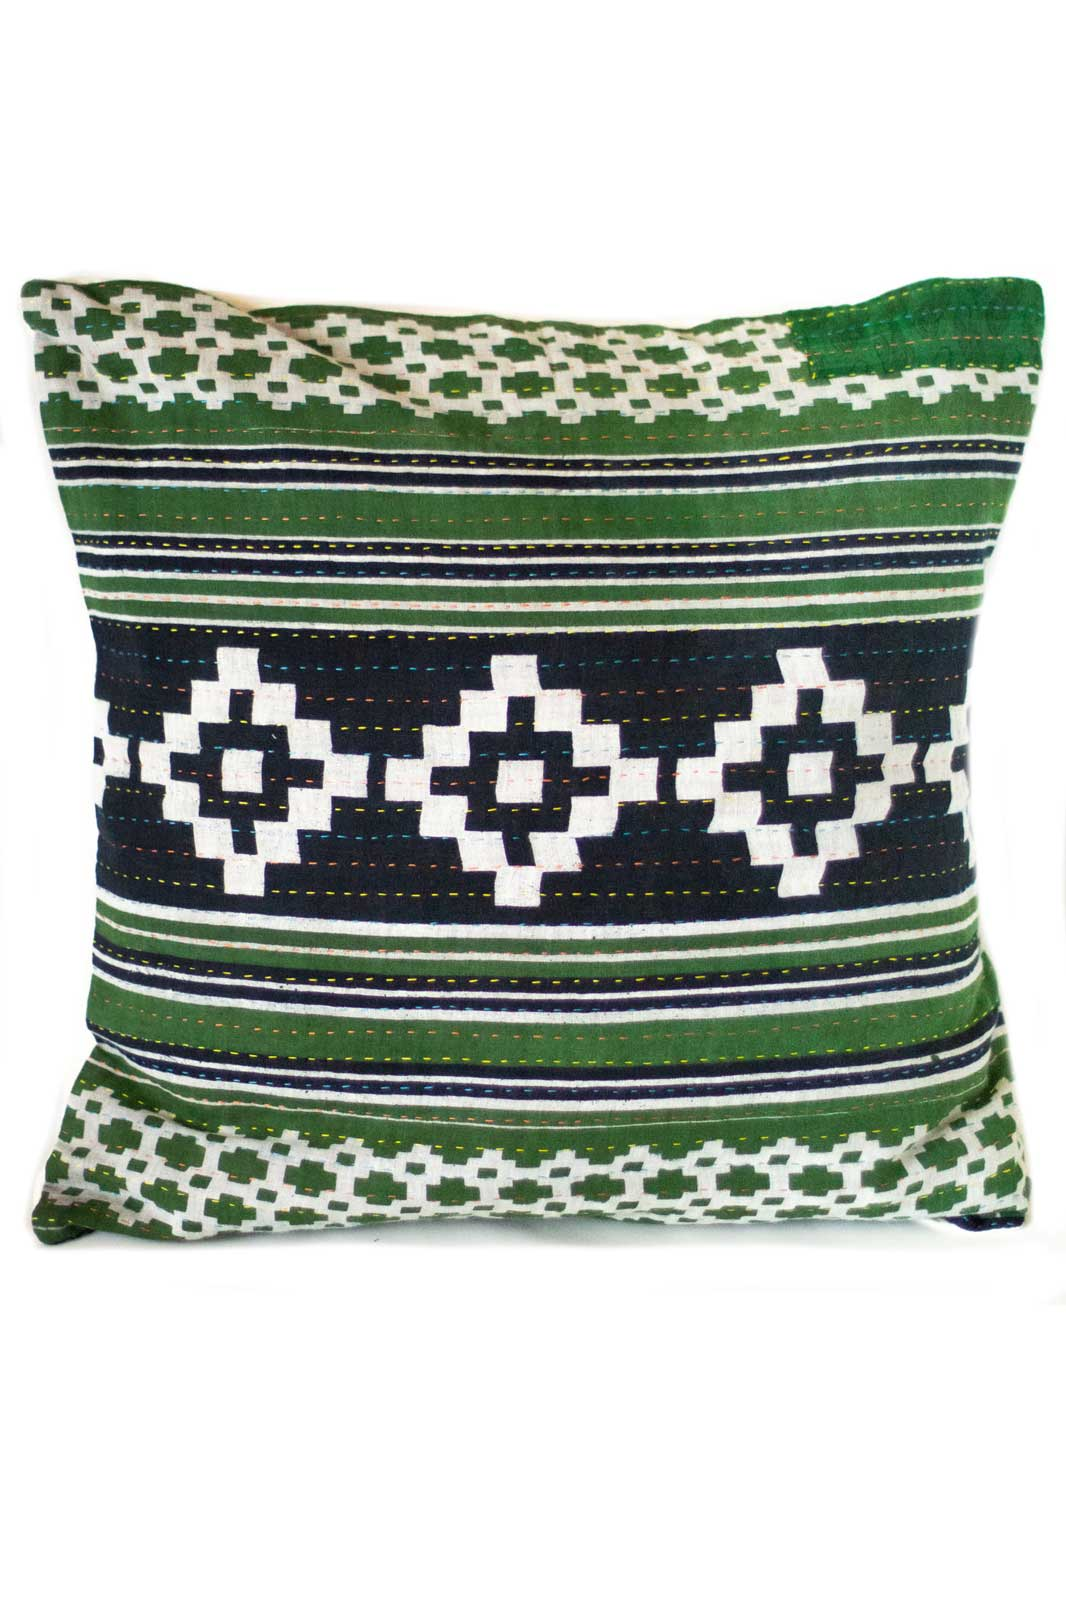 Intricate no. 5 Kantha Pillow Cover